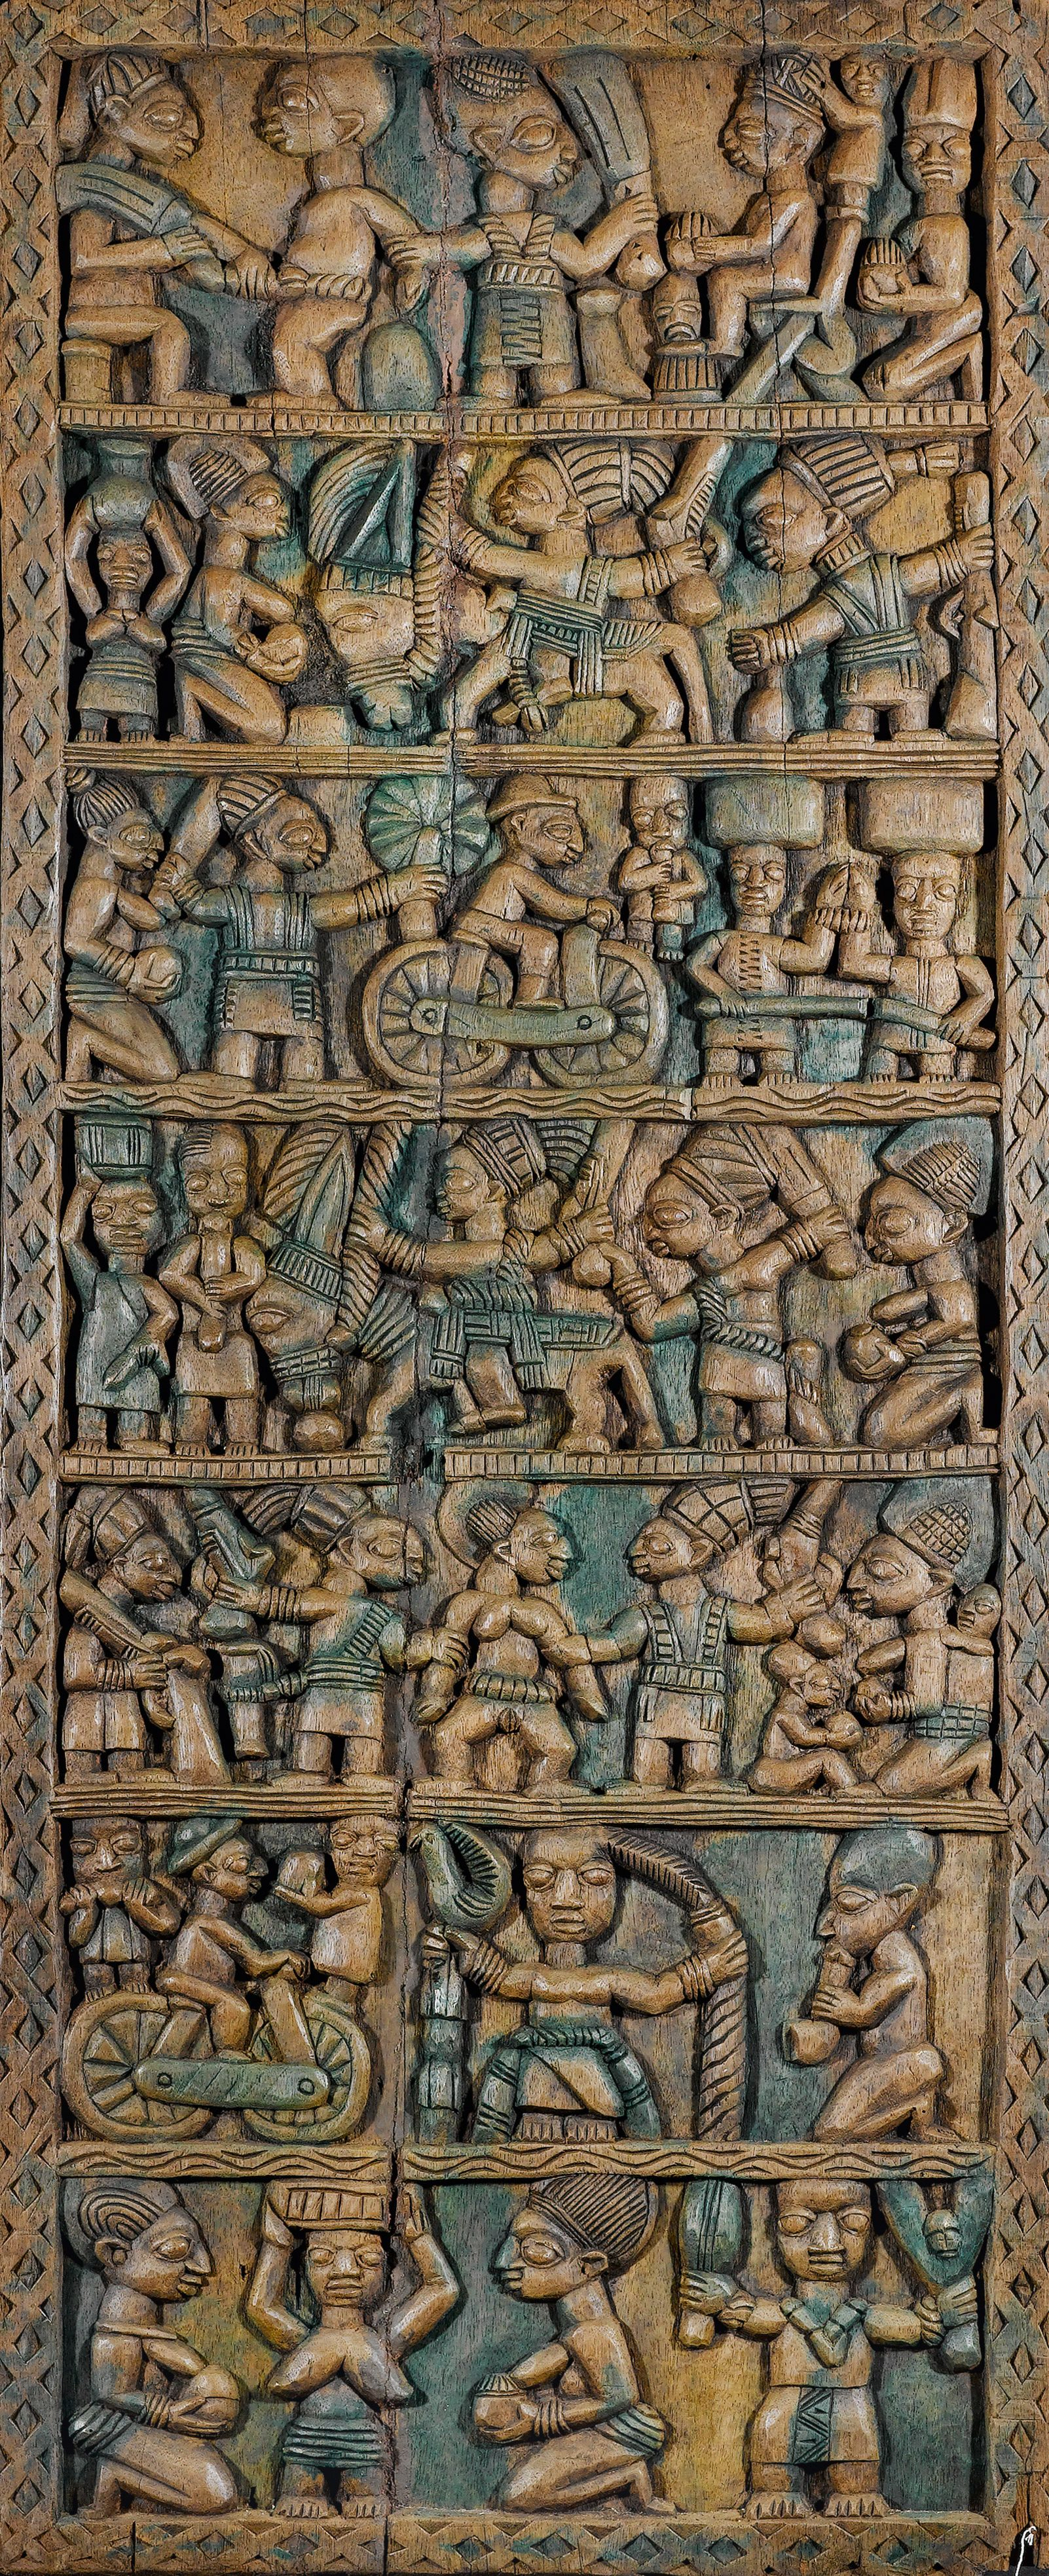 Early century areogun oder oshamuko von osi artist palace door panel from the yoruba people of northern ekiti region of nigeria africa